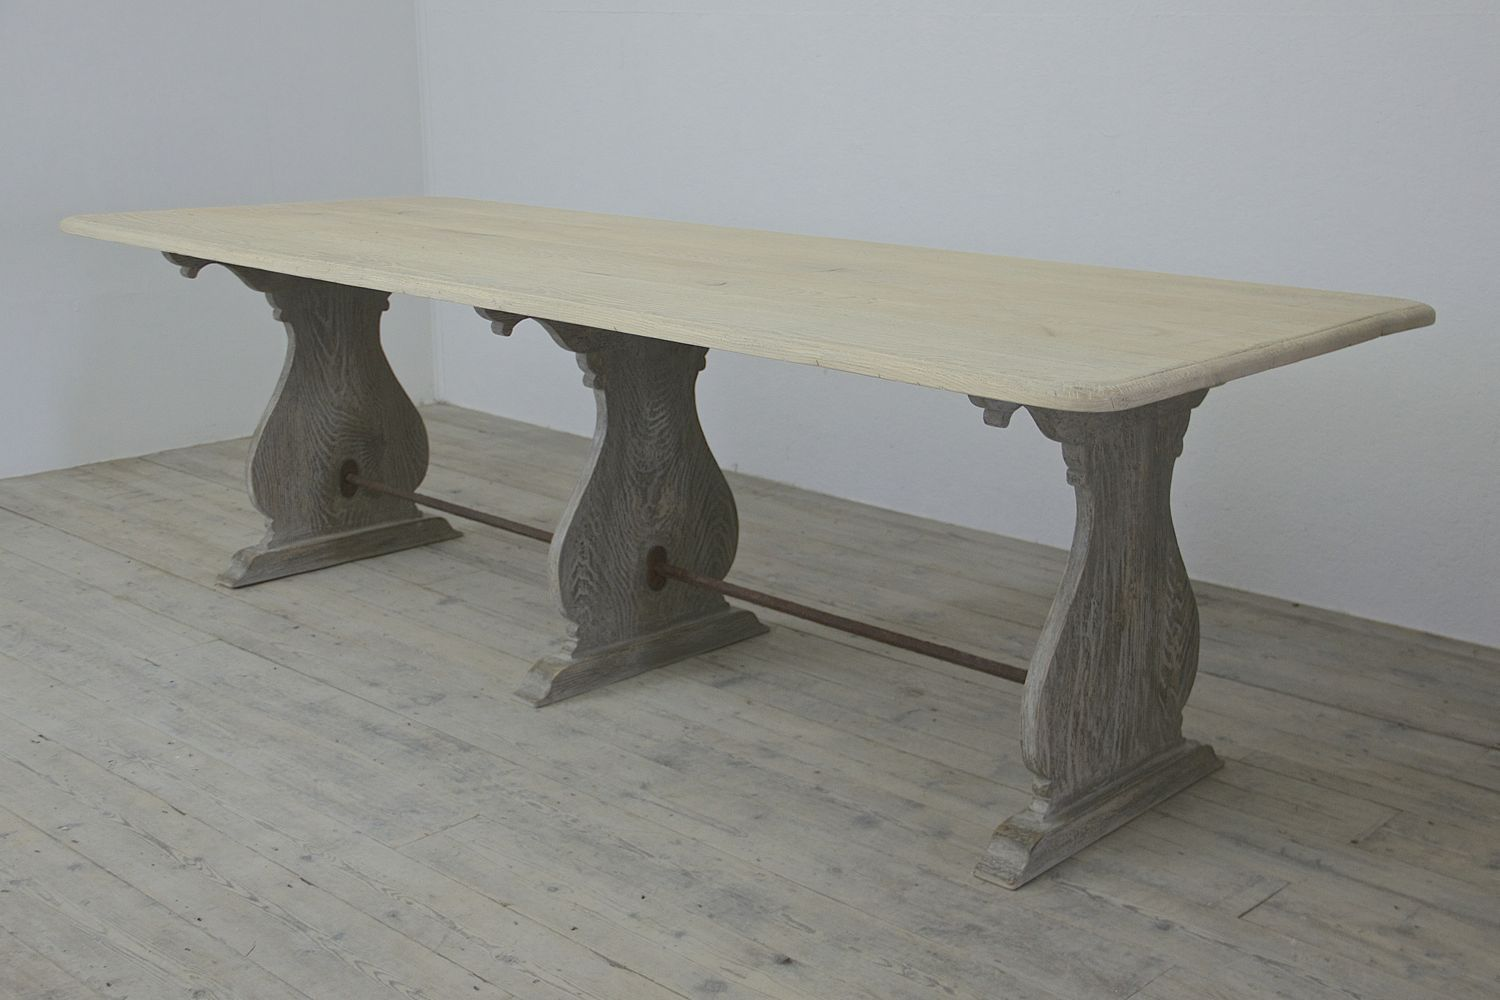 The Raccolta Table. http://www.matthewcox.com/product/the-raccolta-table-–-an-ash-and-wrought-iron-trestle-table-inspired-by-the-simple-furniture-found-in-the-abandoned-chapel-of-c16th-villa-raccolta